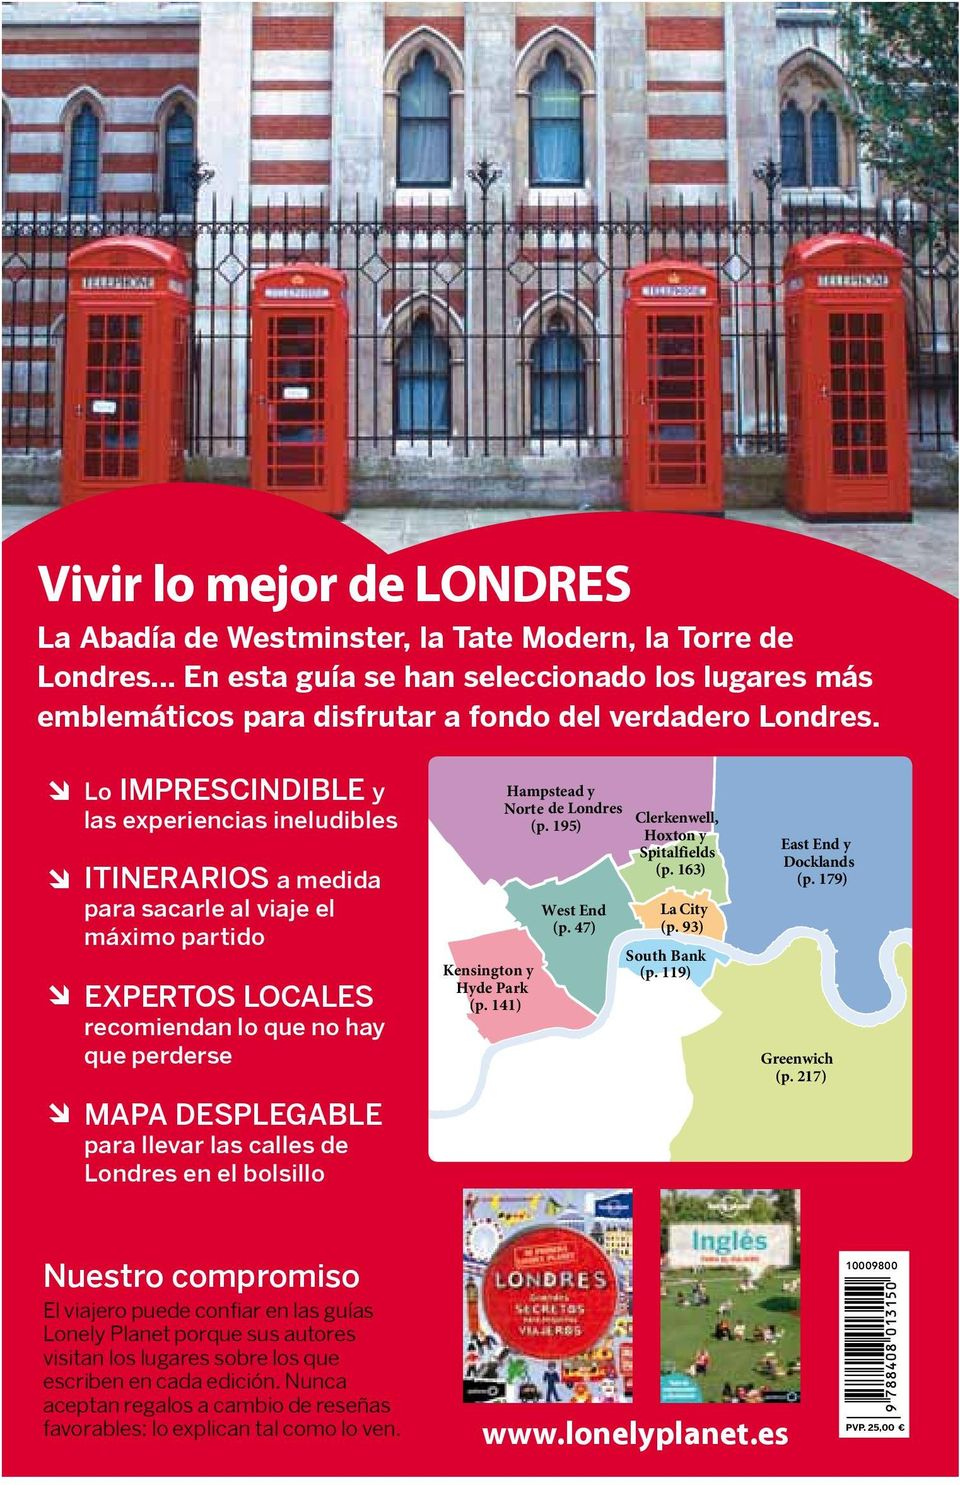 calles de Londres en el bolsillo Kensington y Hyde Park (p. 141) Hampsteady Norte de Londres (p. 195) West End (p. 47) Clerkenwell, Hoxton y Spitalfields (p. 163) La City (p. 93) South Bank (p.